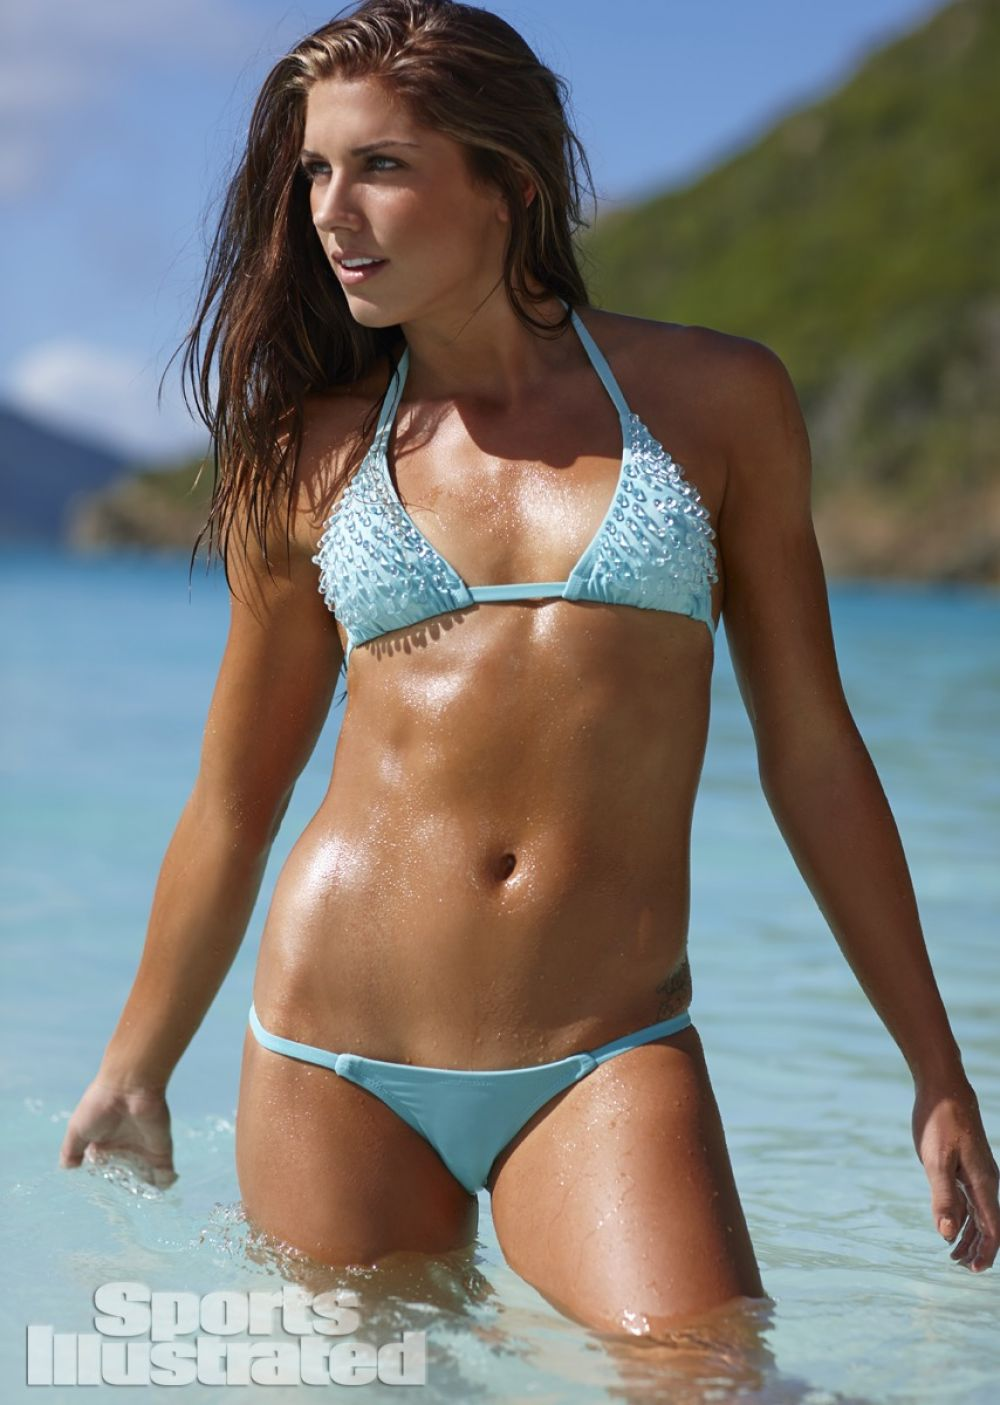 alex-morgan-in-sports-illustrated-2014-swimsuit-issue_6.jpg - 136.61 KB